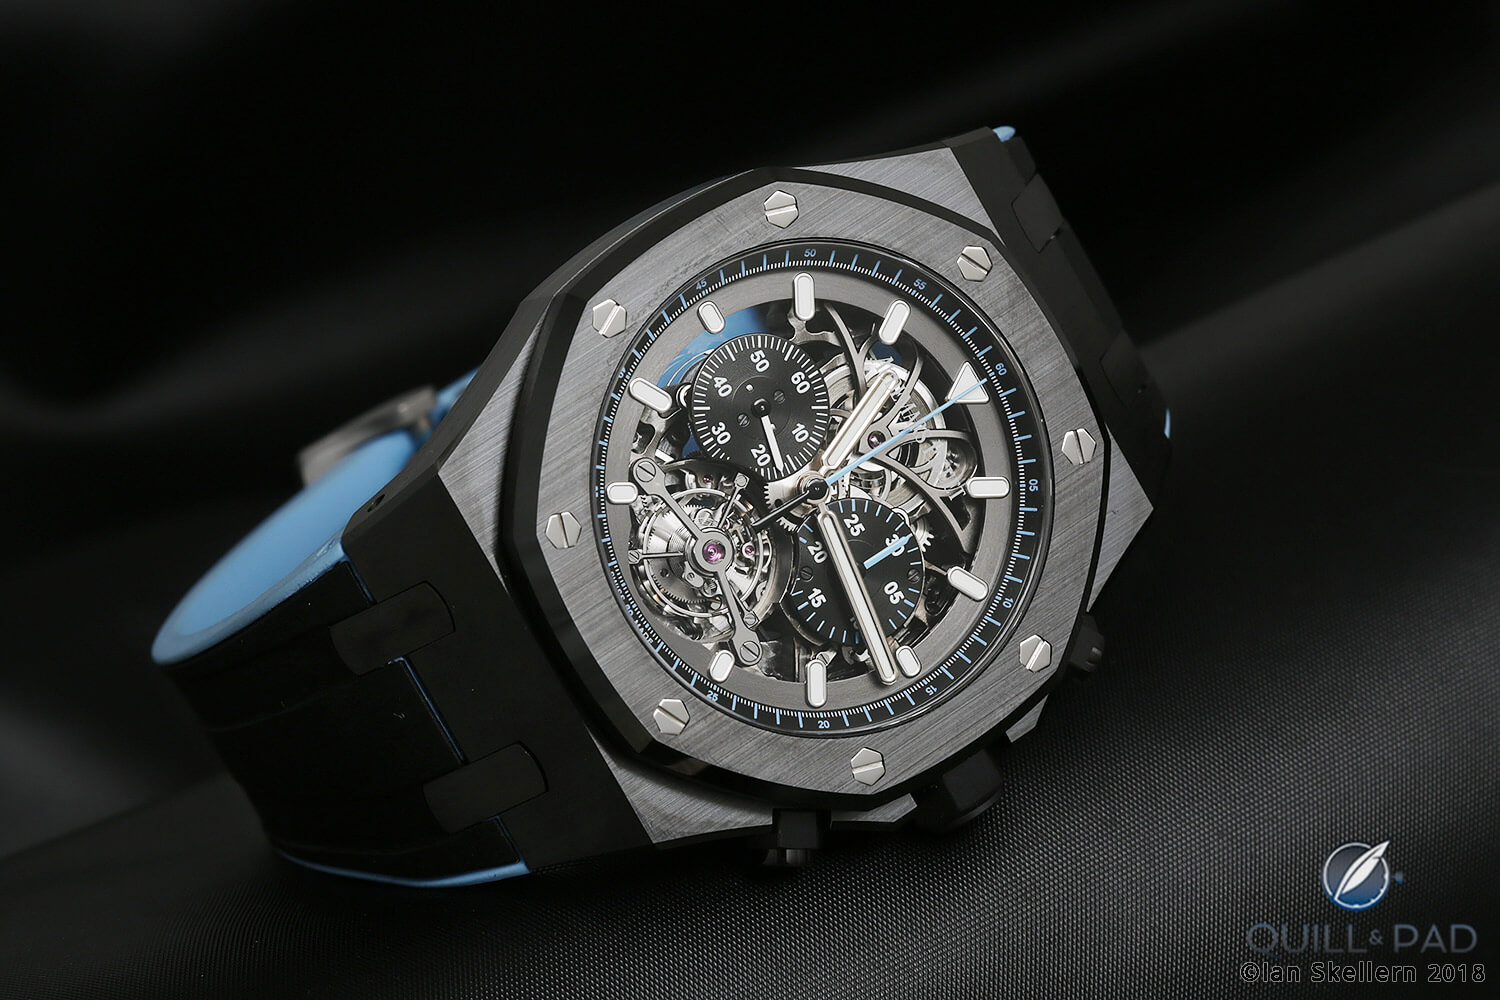 Audemars Piguet Royal-Oak Offshore Tourbillon Chronograph